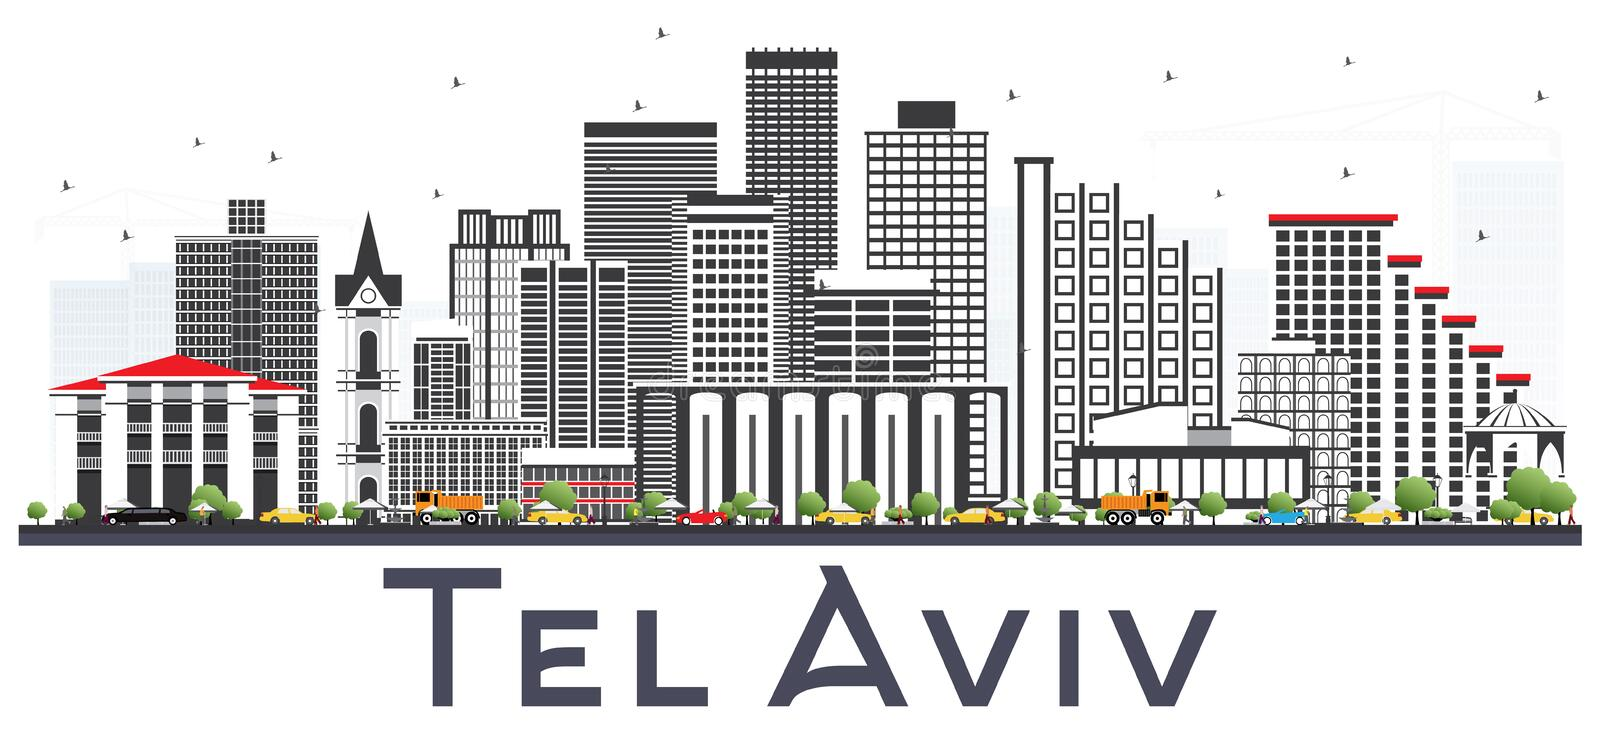 Tel Aviv Israel City Skyline with Gray Buildings Isolated on White. Vector Illustration. Business Travel and Tourism Concept with Modern Architecture. Tel Aviv vector illustration